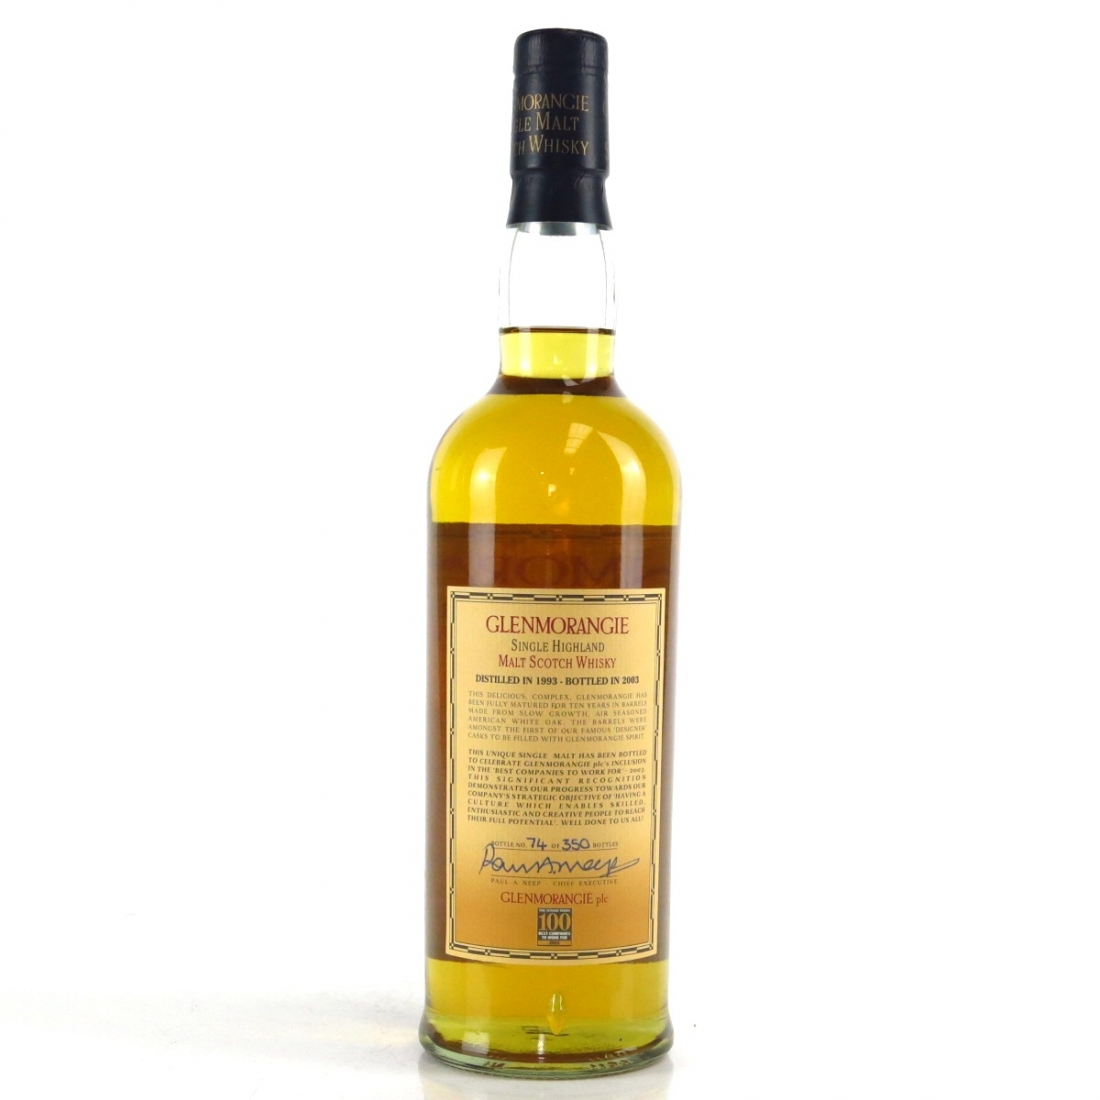 Glenmorangie 1993 Cask Strength 10 Year Old / 100 Best UK Companies To Work For